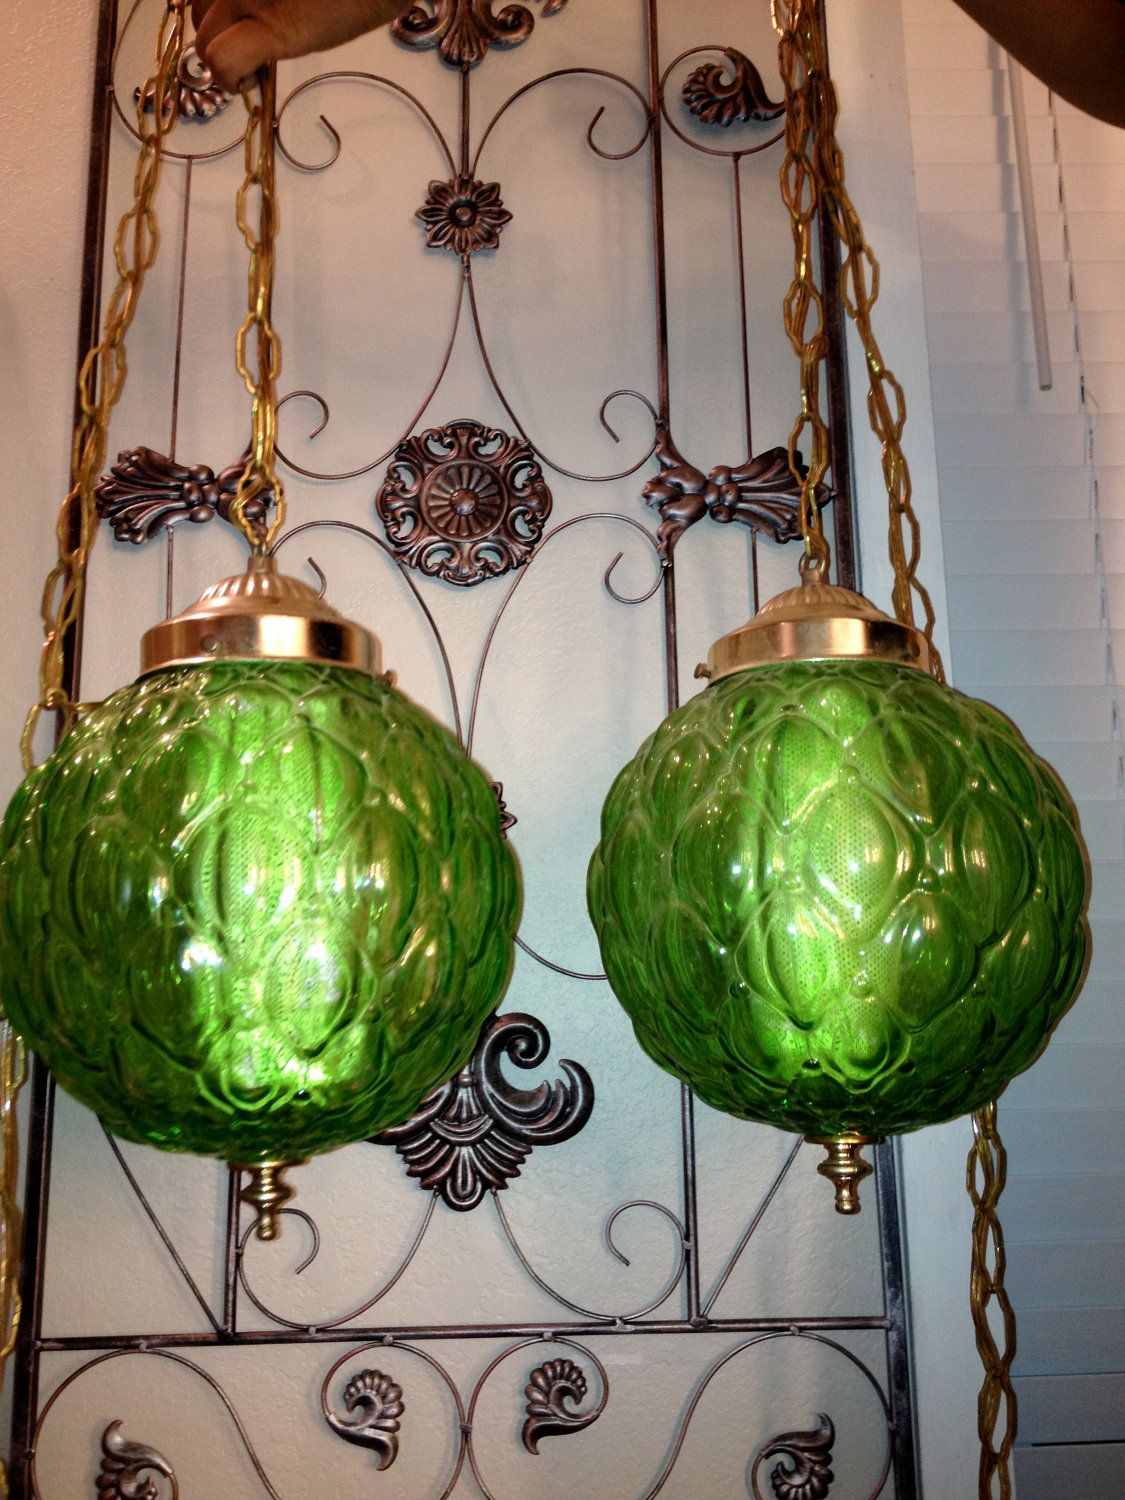 Vintage Retro Green Glass Swag Hanging Lamp Lights 95 00 Via